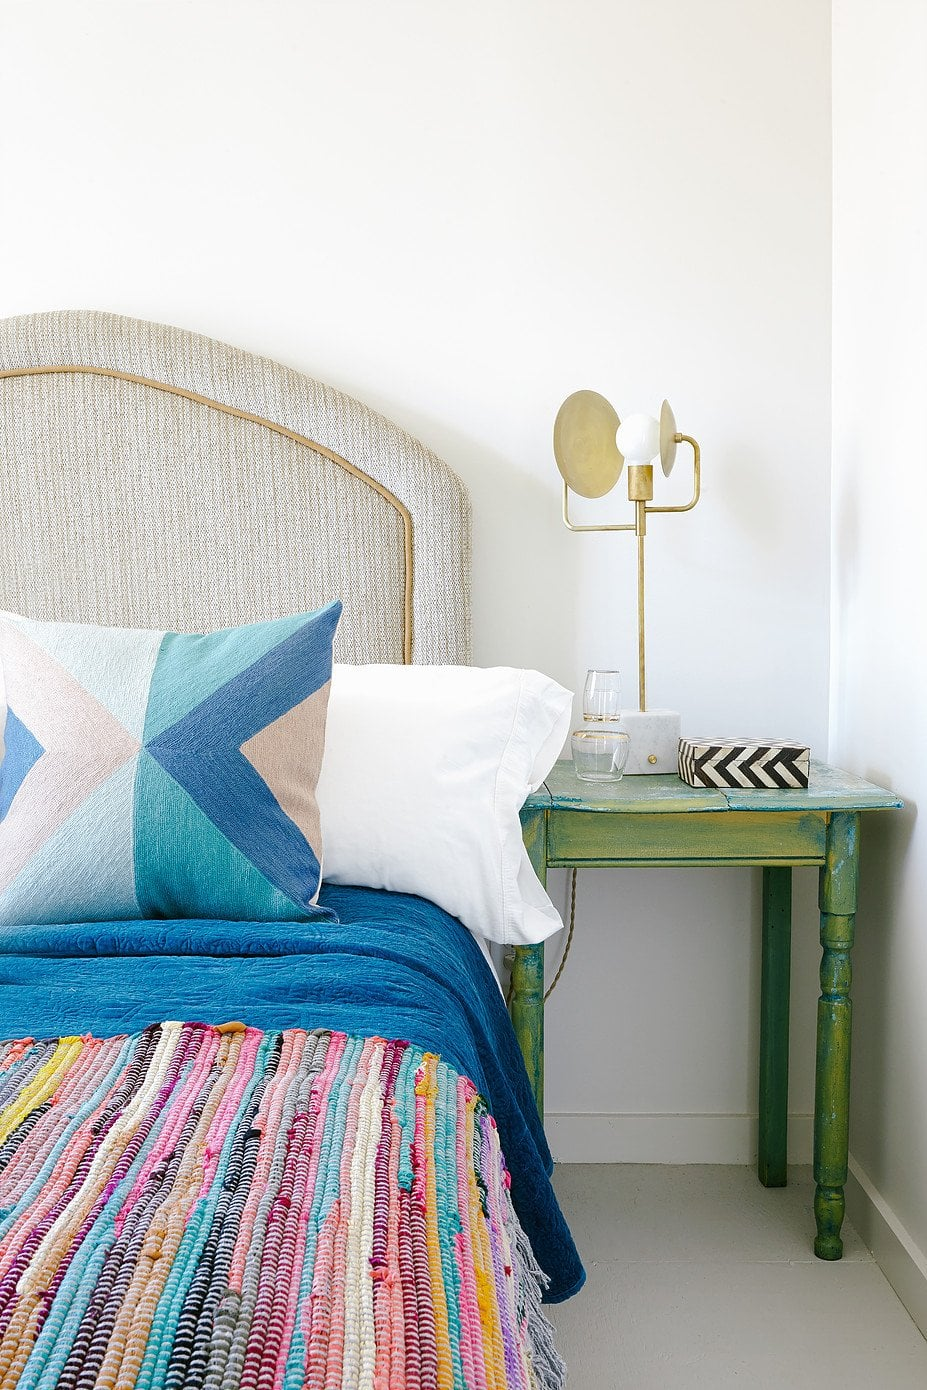 Tips on mixing patterns from Steve McKenzie, Modern bohemian bedroom design on @thouswellblog